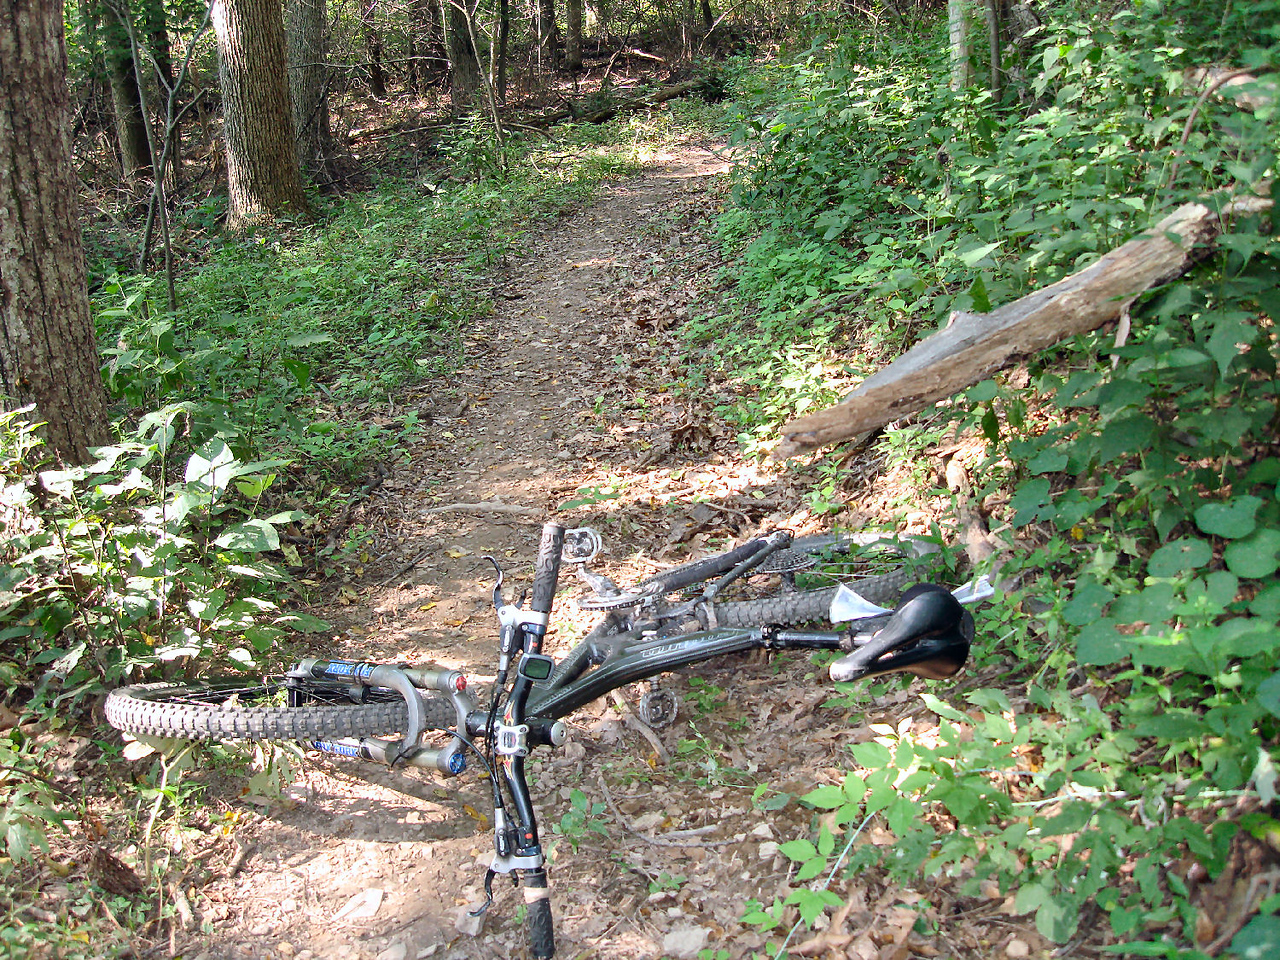 Possible, rider impalement on trail - Before